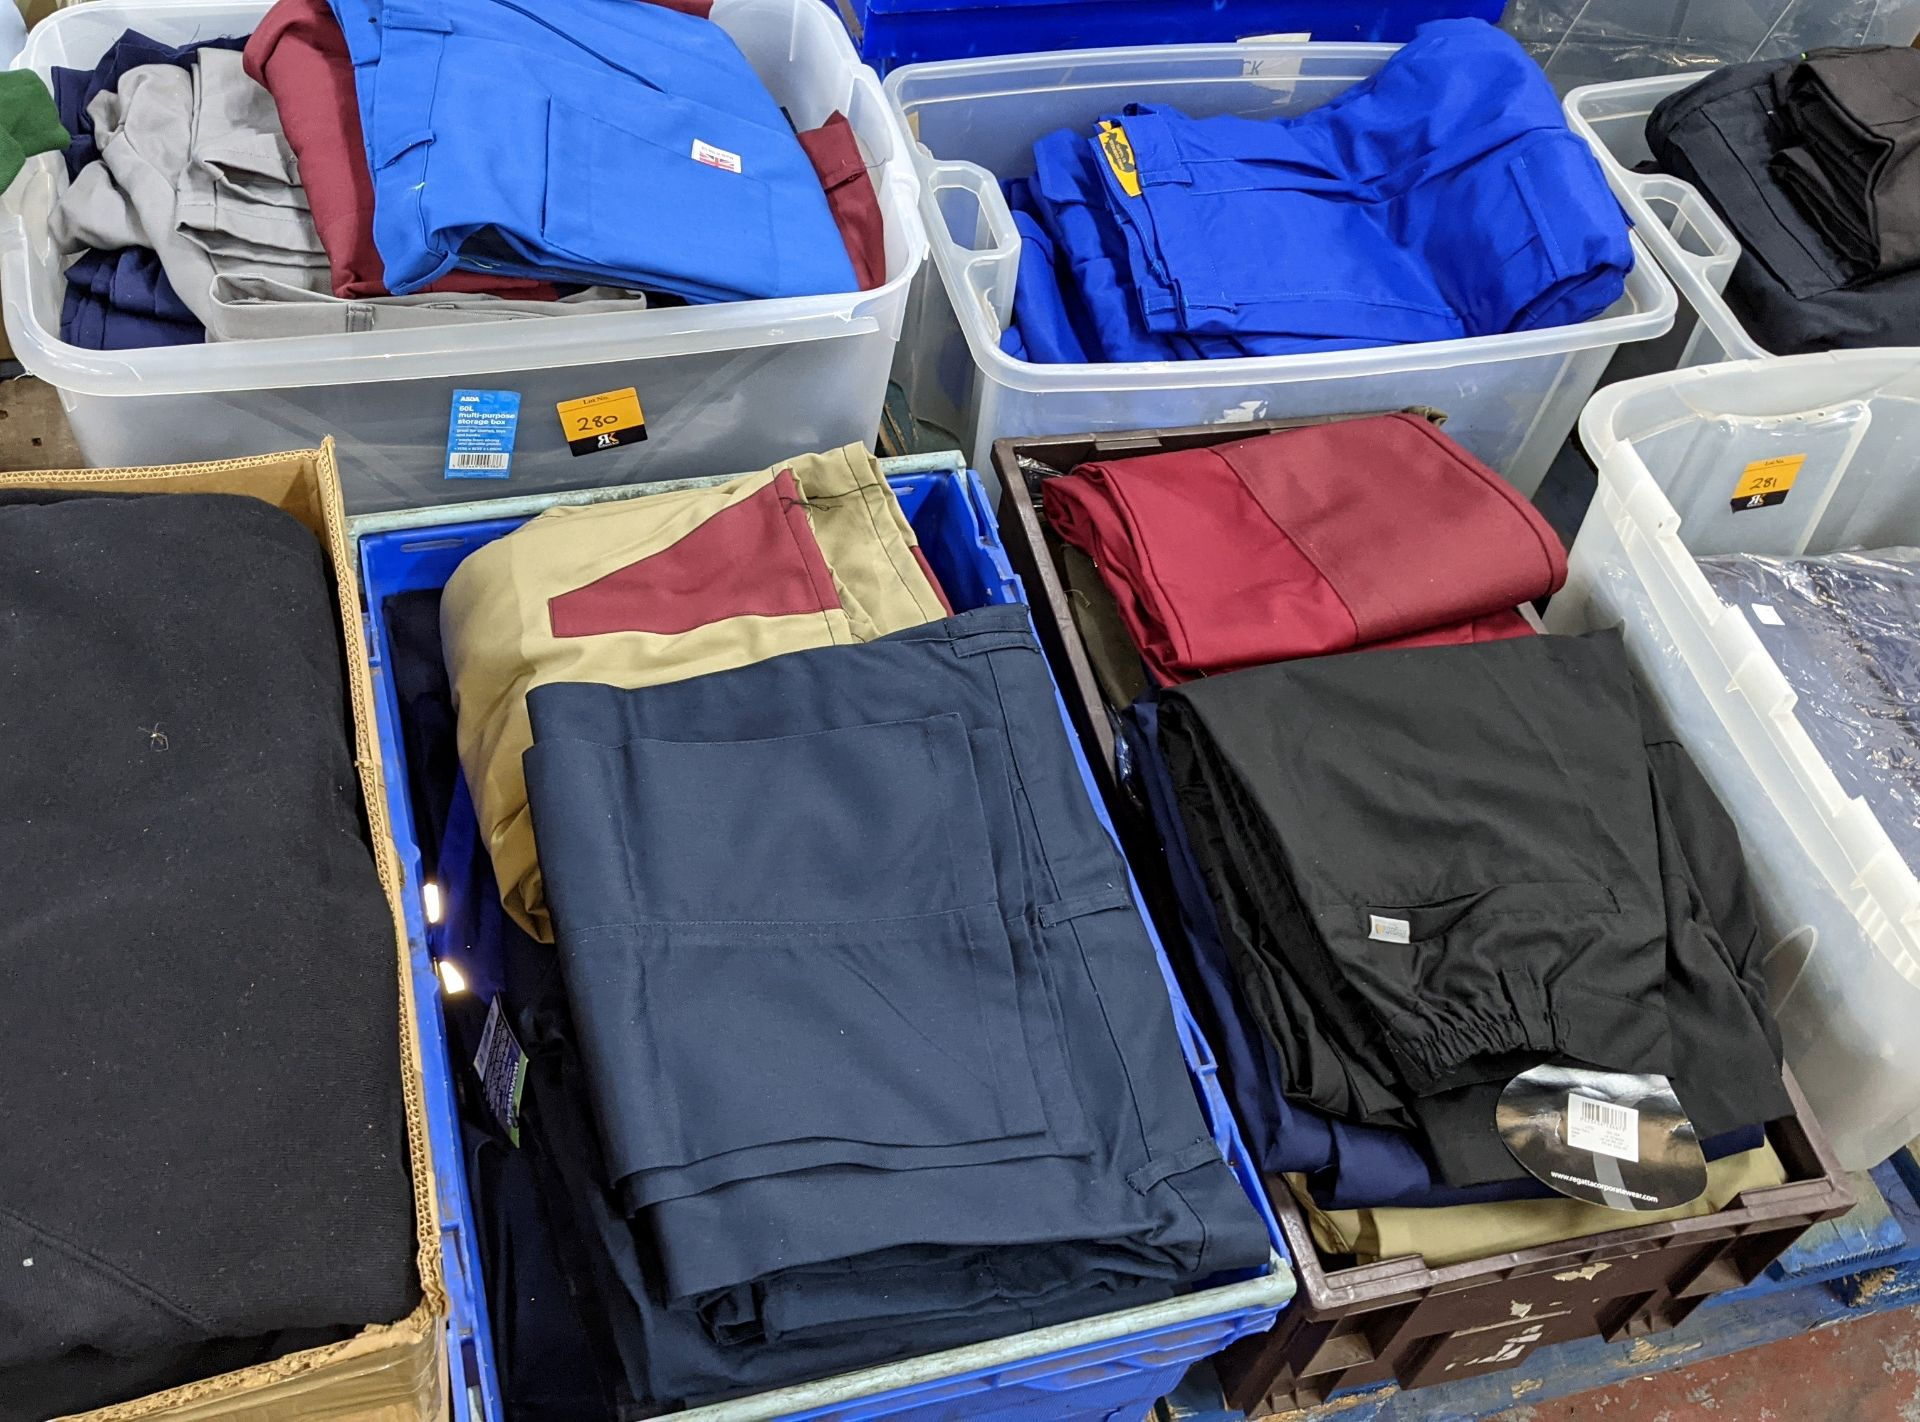 The contents of 4 crates of assorted work trousers. NB crates excluded